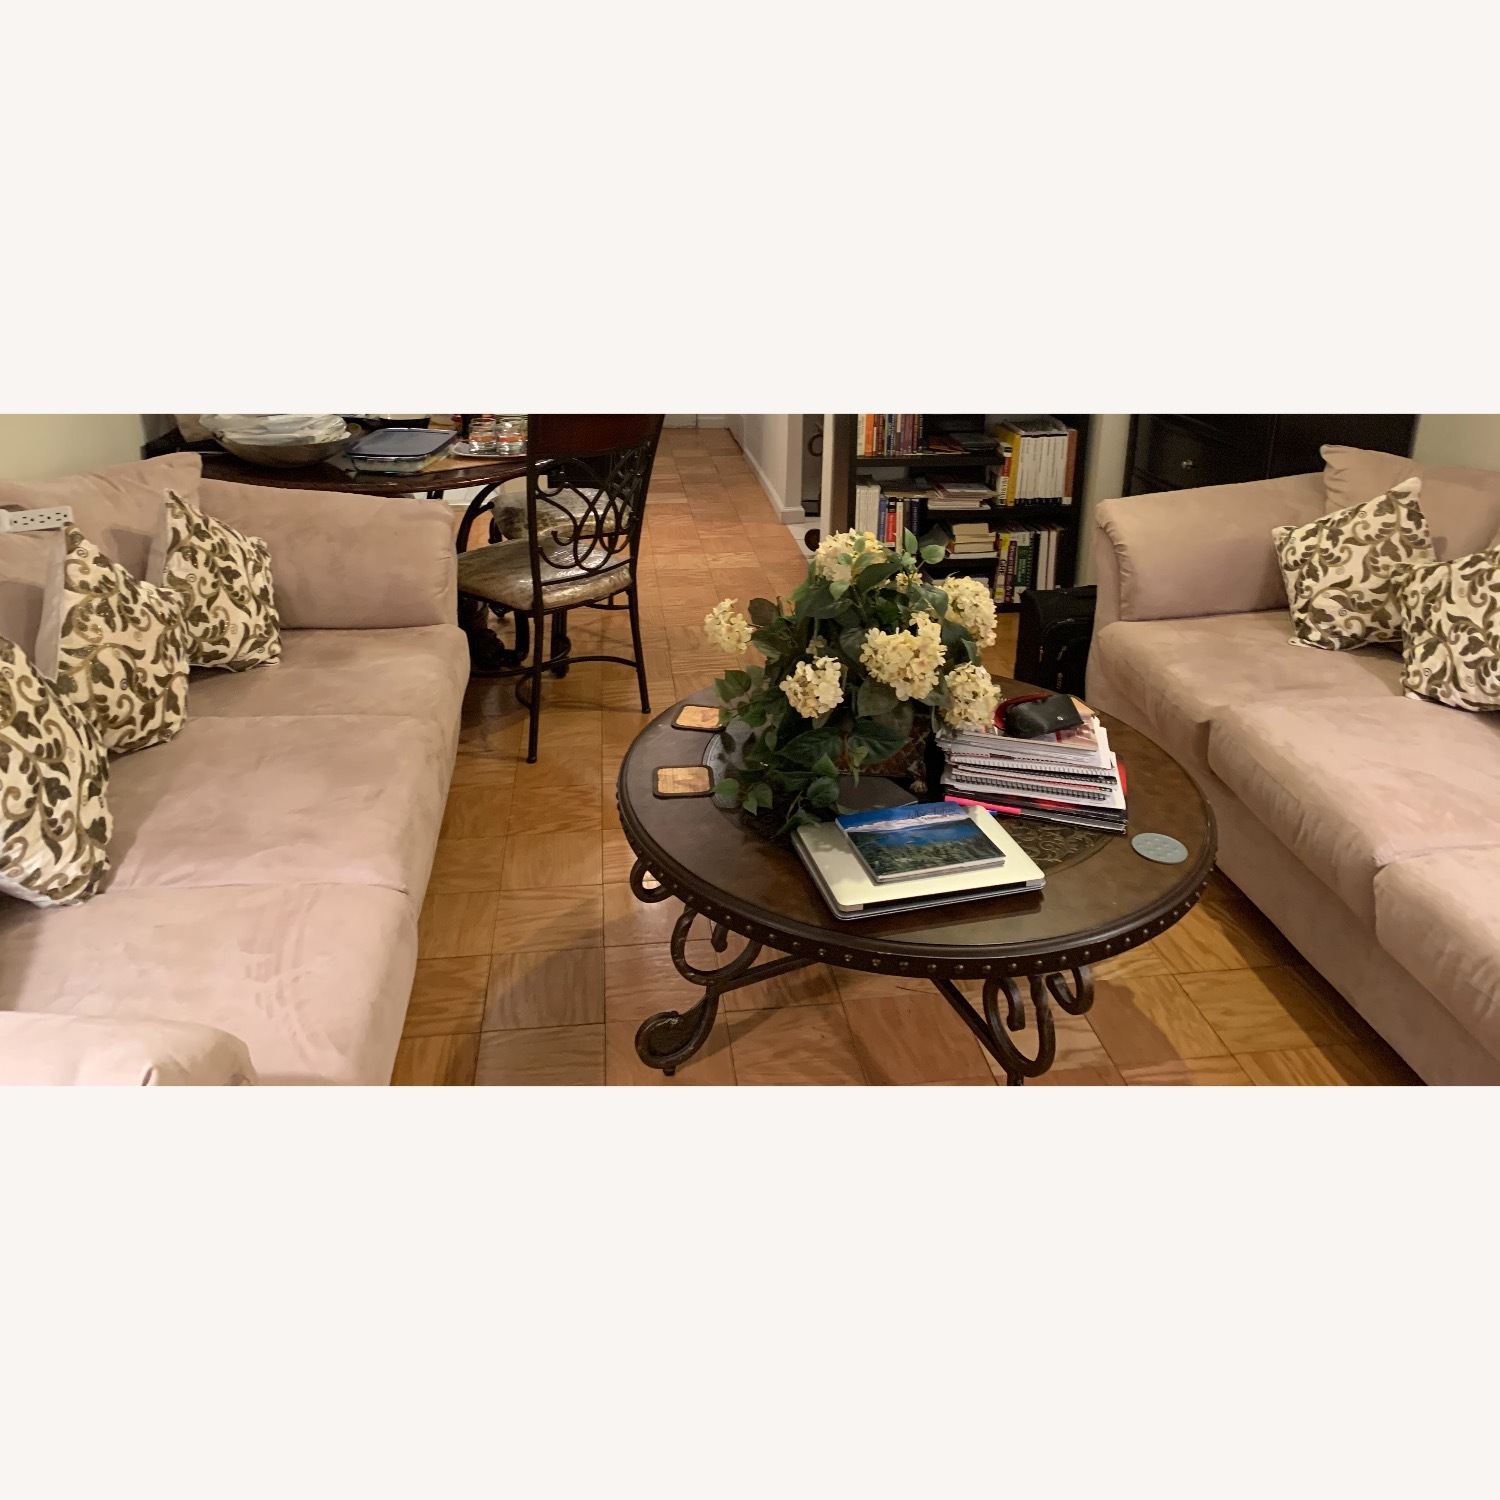 Antique Ornate Coffee Table - image-1